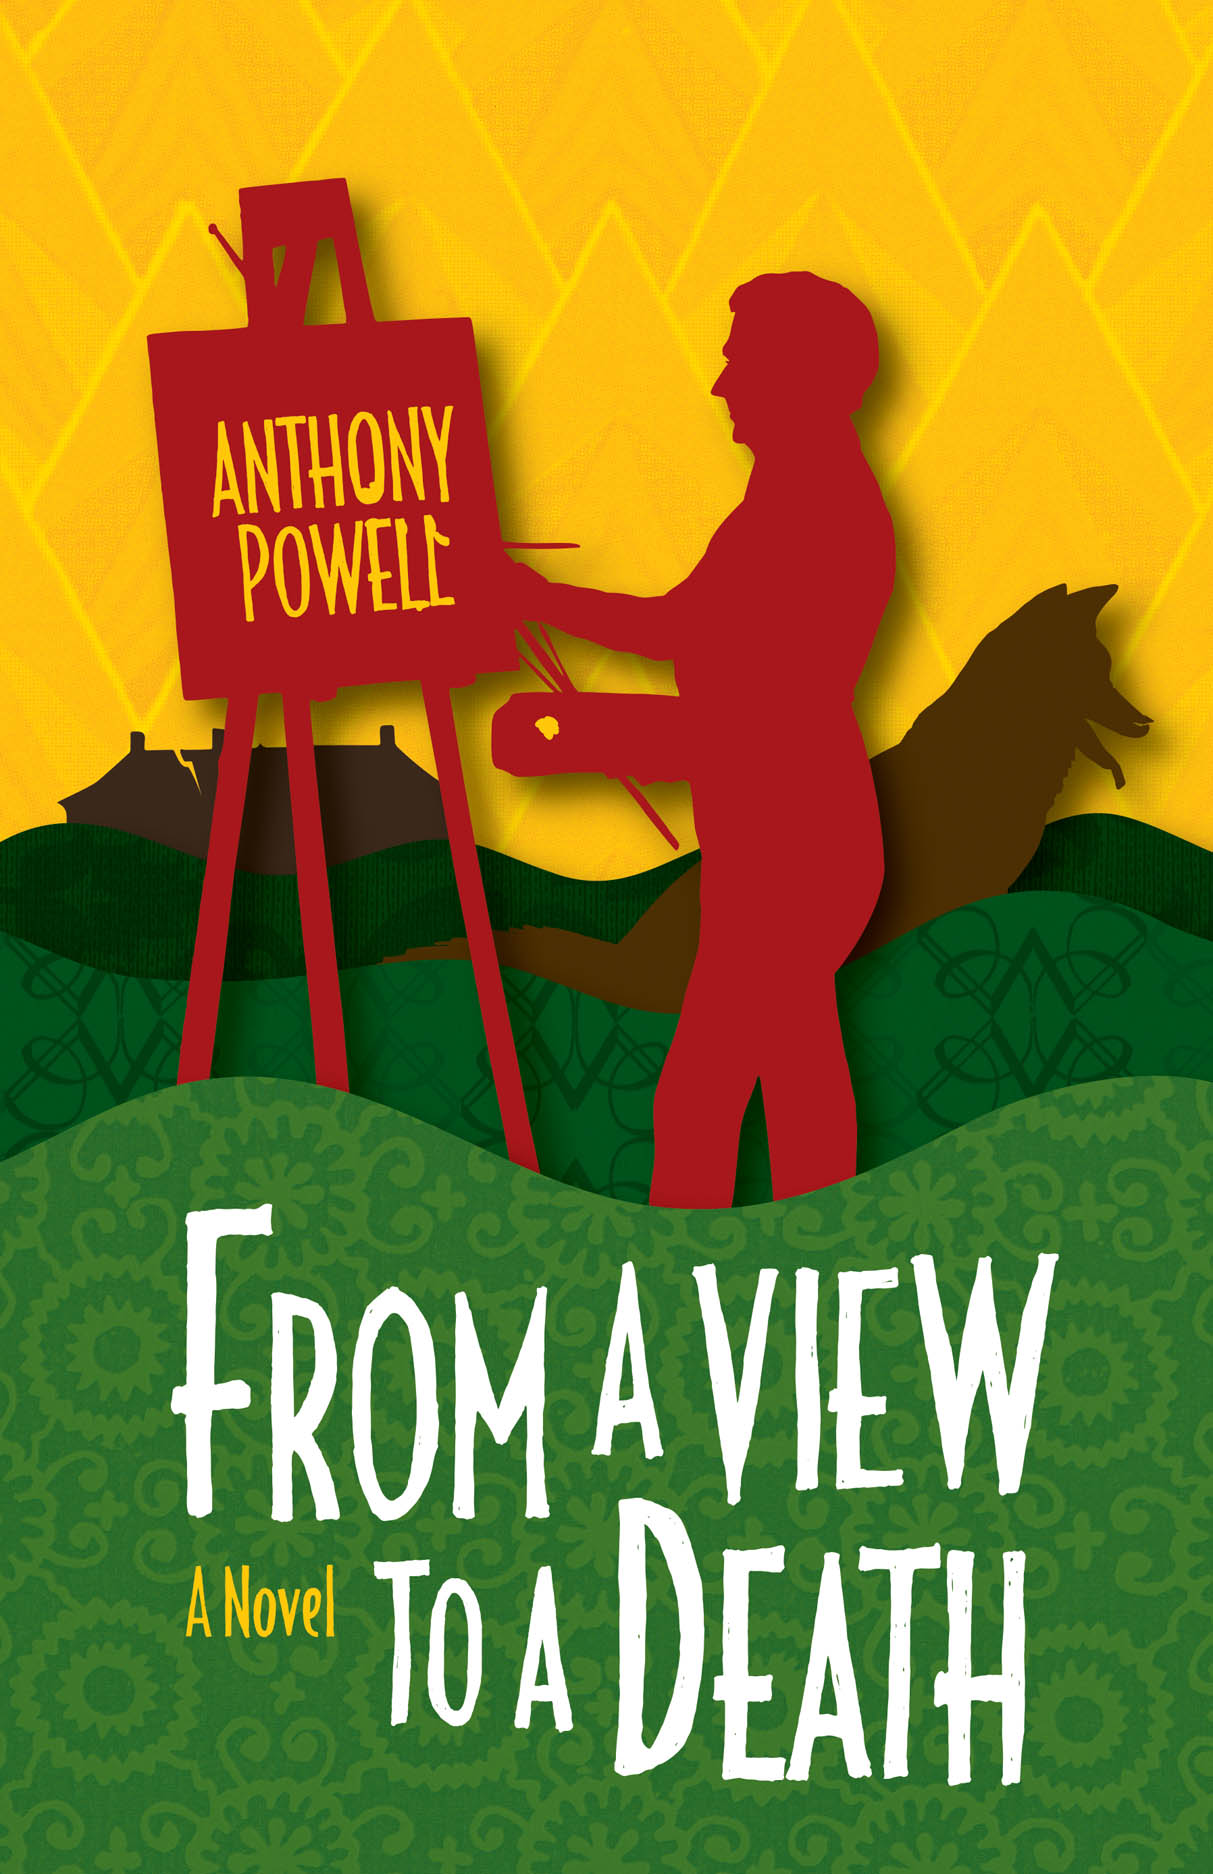 From a View to a Death: A Novel